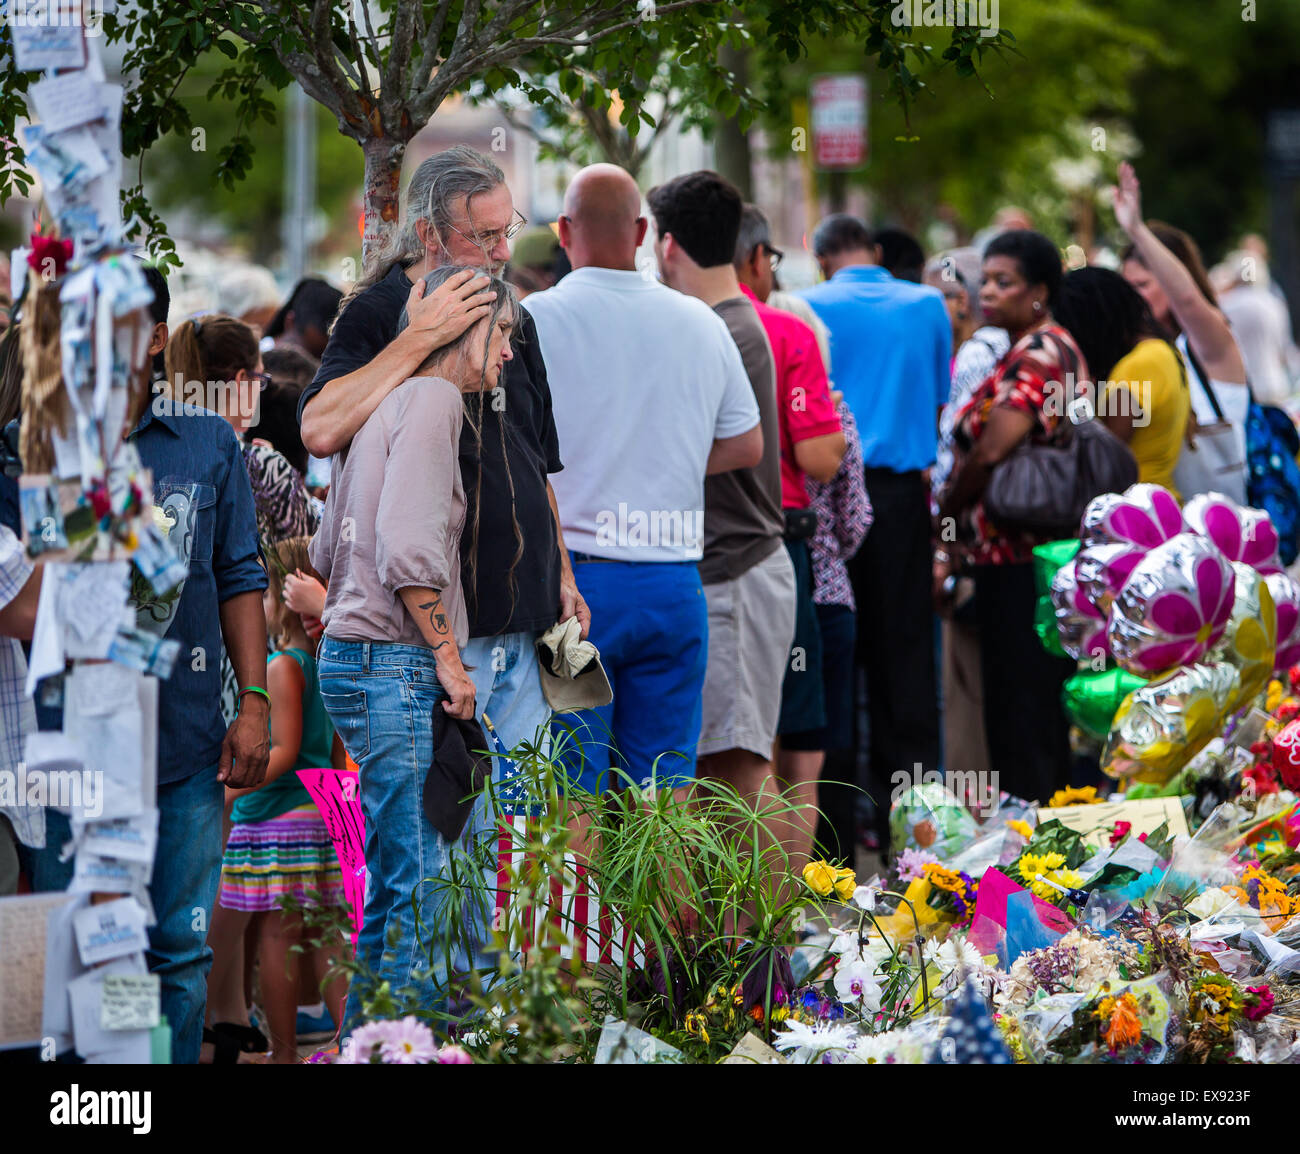 Mourners pay their respect at the memorial that sprung up in front of Emanuel AME Church on Calhoun St. - Stock Image